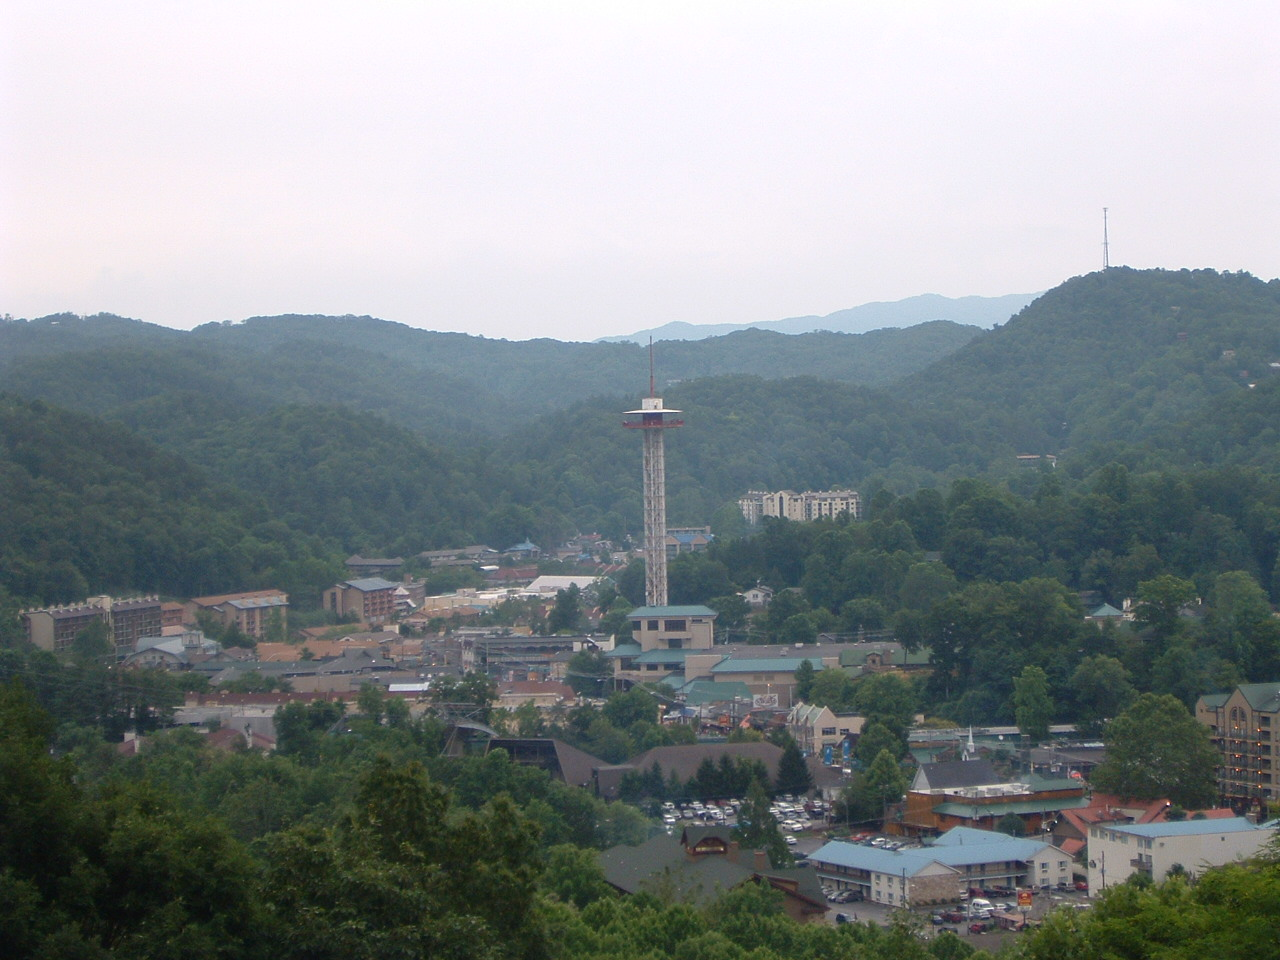 Gatlinburg Tennessee space needle Historic Nature Trail